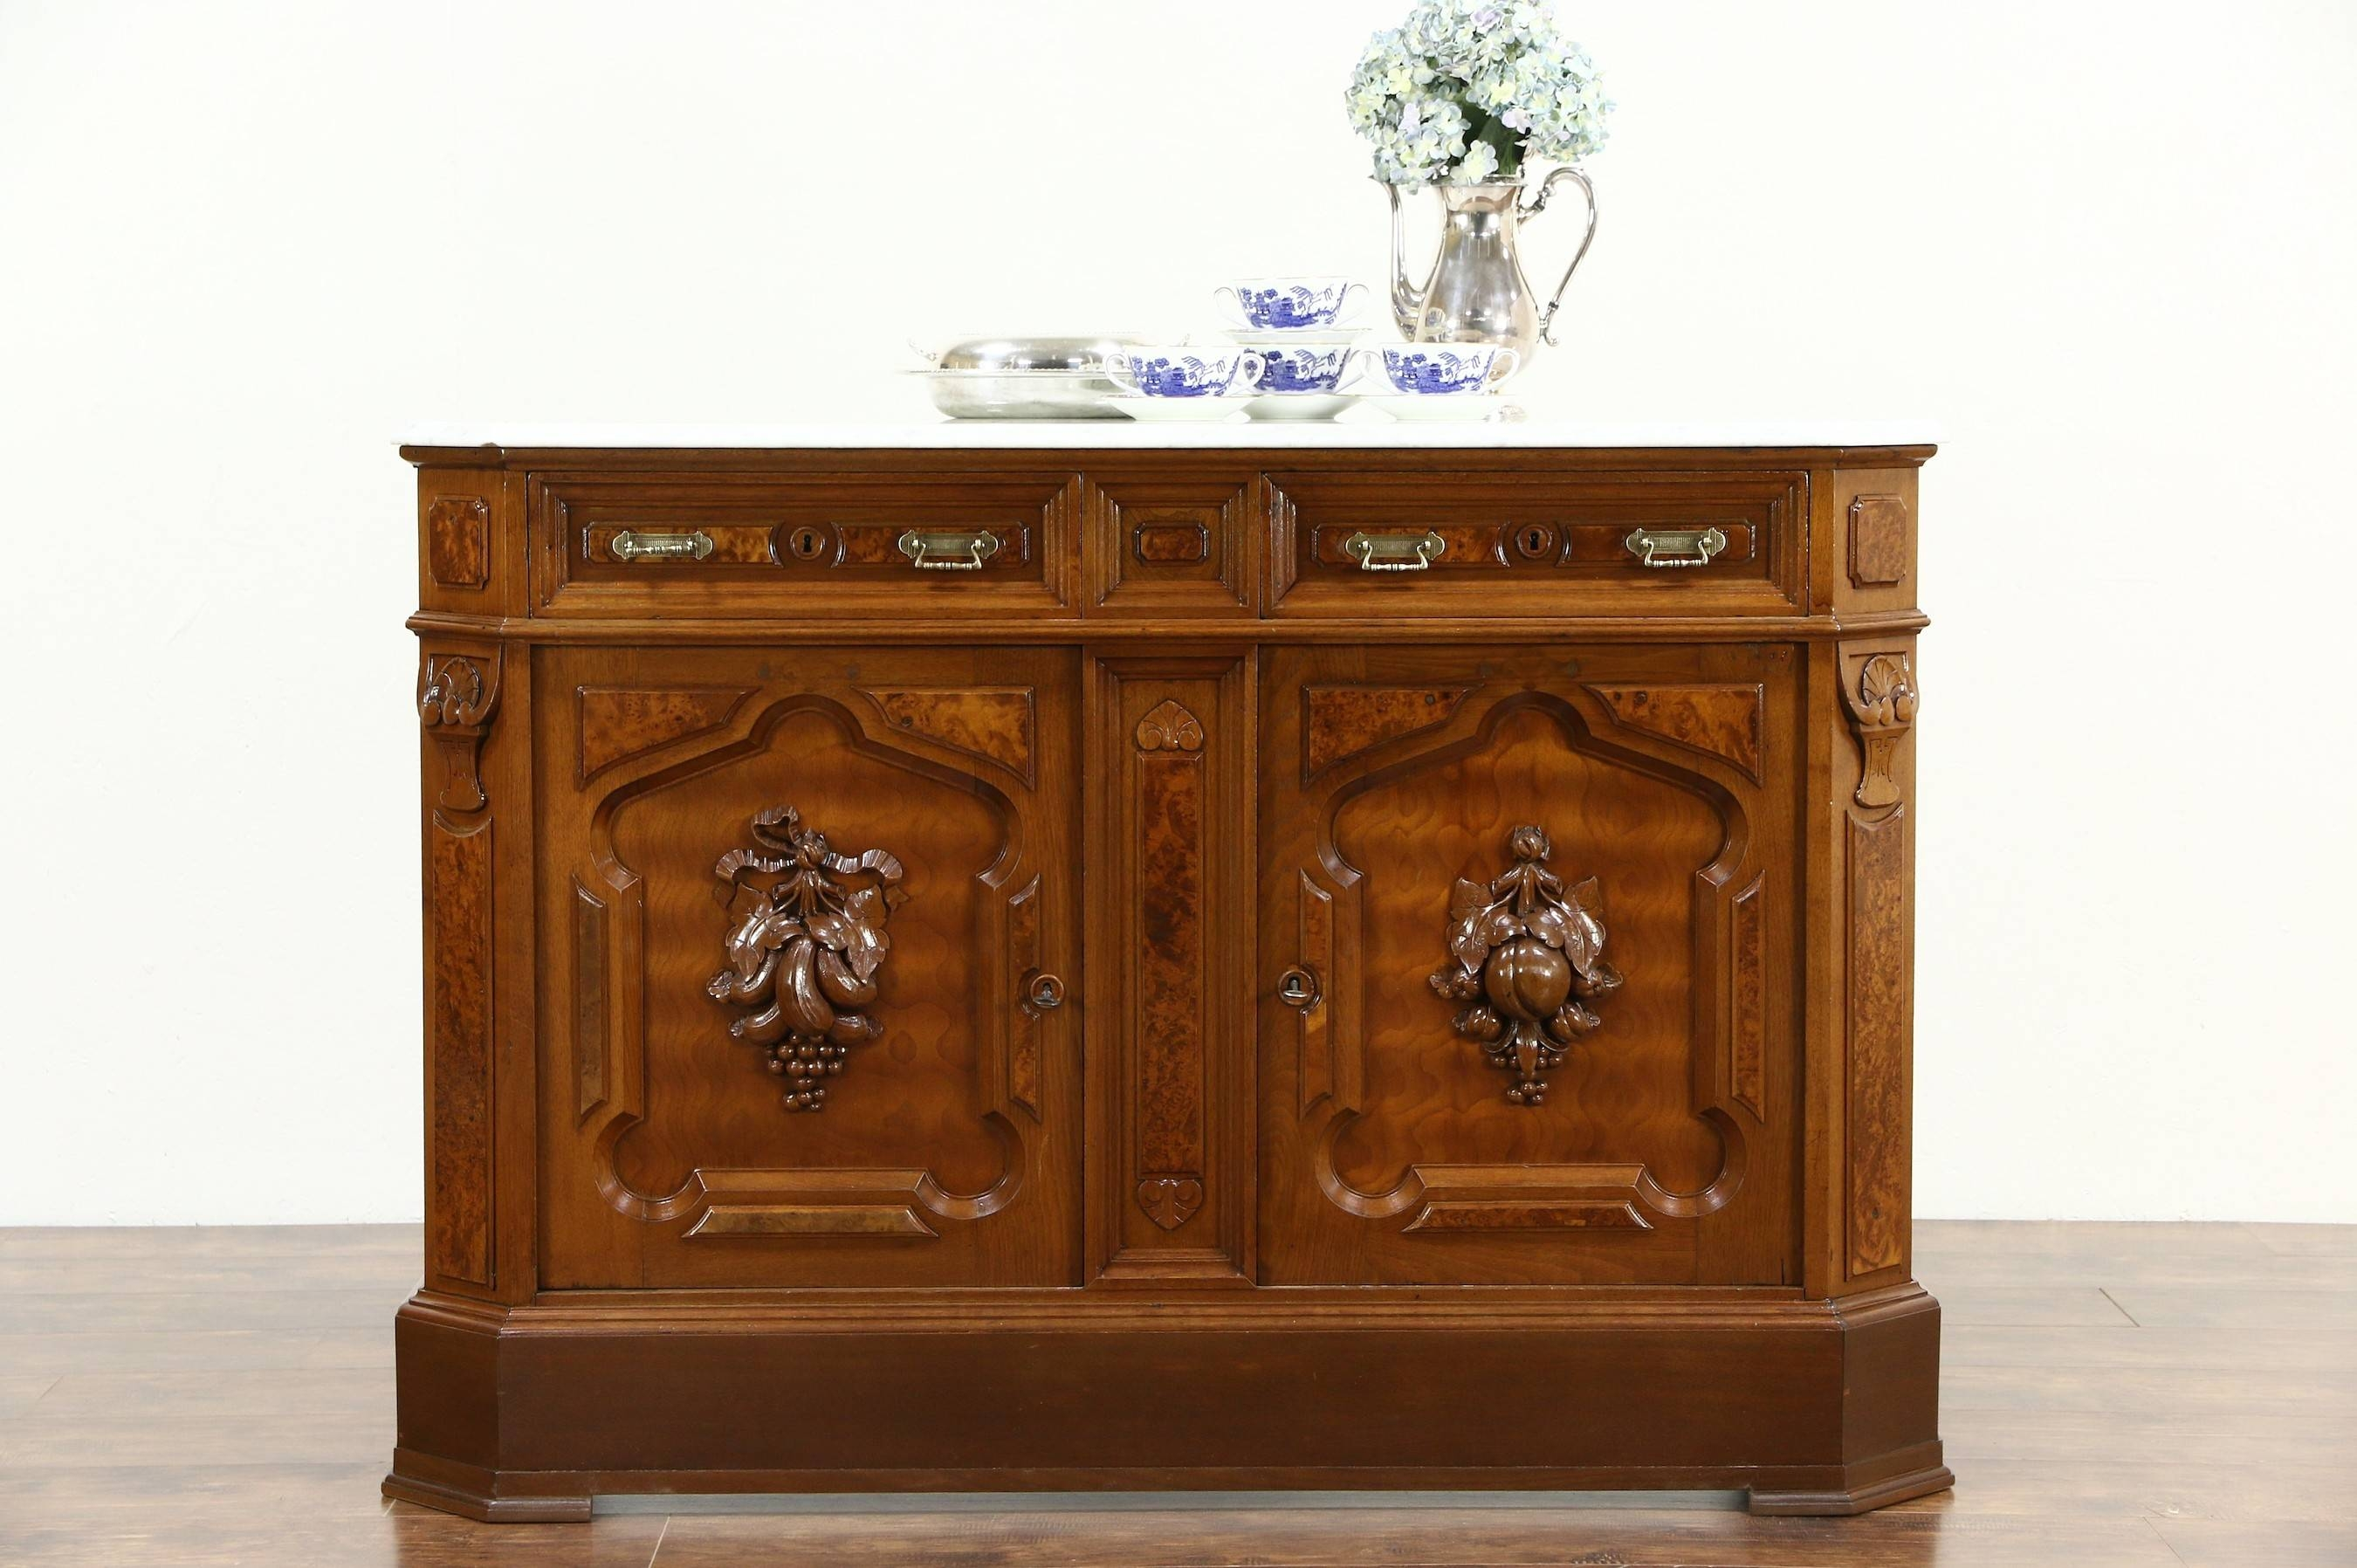 Sold - Victorian 1880 Antique Marble Top Walnut Sideboard Server intended for Antique Marble Top Sideboards (Image 14 of 15)